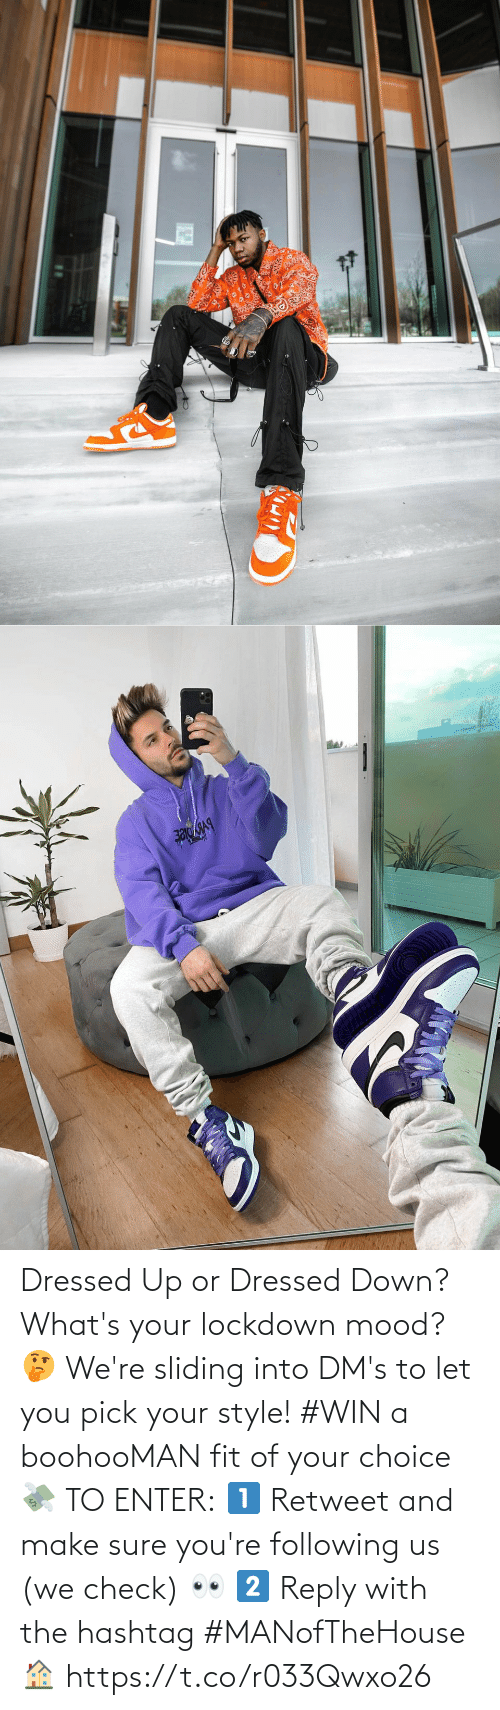 reply: Dressed Up or Dressed Down? What's your lockdown mood? 🤔  We're sliding into DM's to let you pick your style! #WIN a boohooMAN fit of your choice 💸  TO ENTER:  1️⃣ Retweet and make sure you're following us (we check) 👀  2️⃣ Reply with the hashtag #MANofTheHouse 🏠 https://t.co/r033Qwxo26